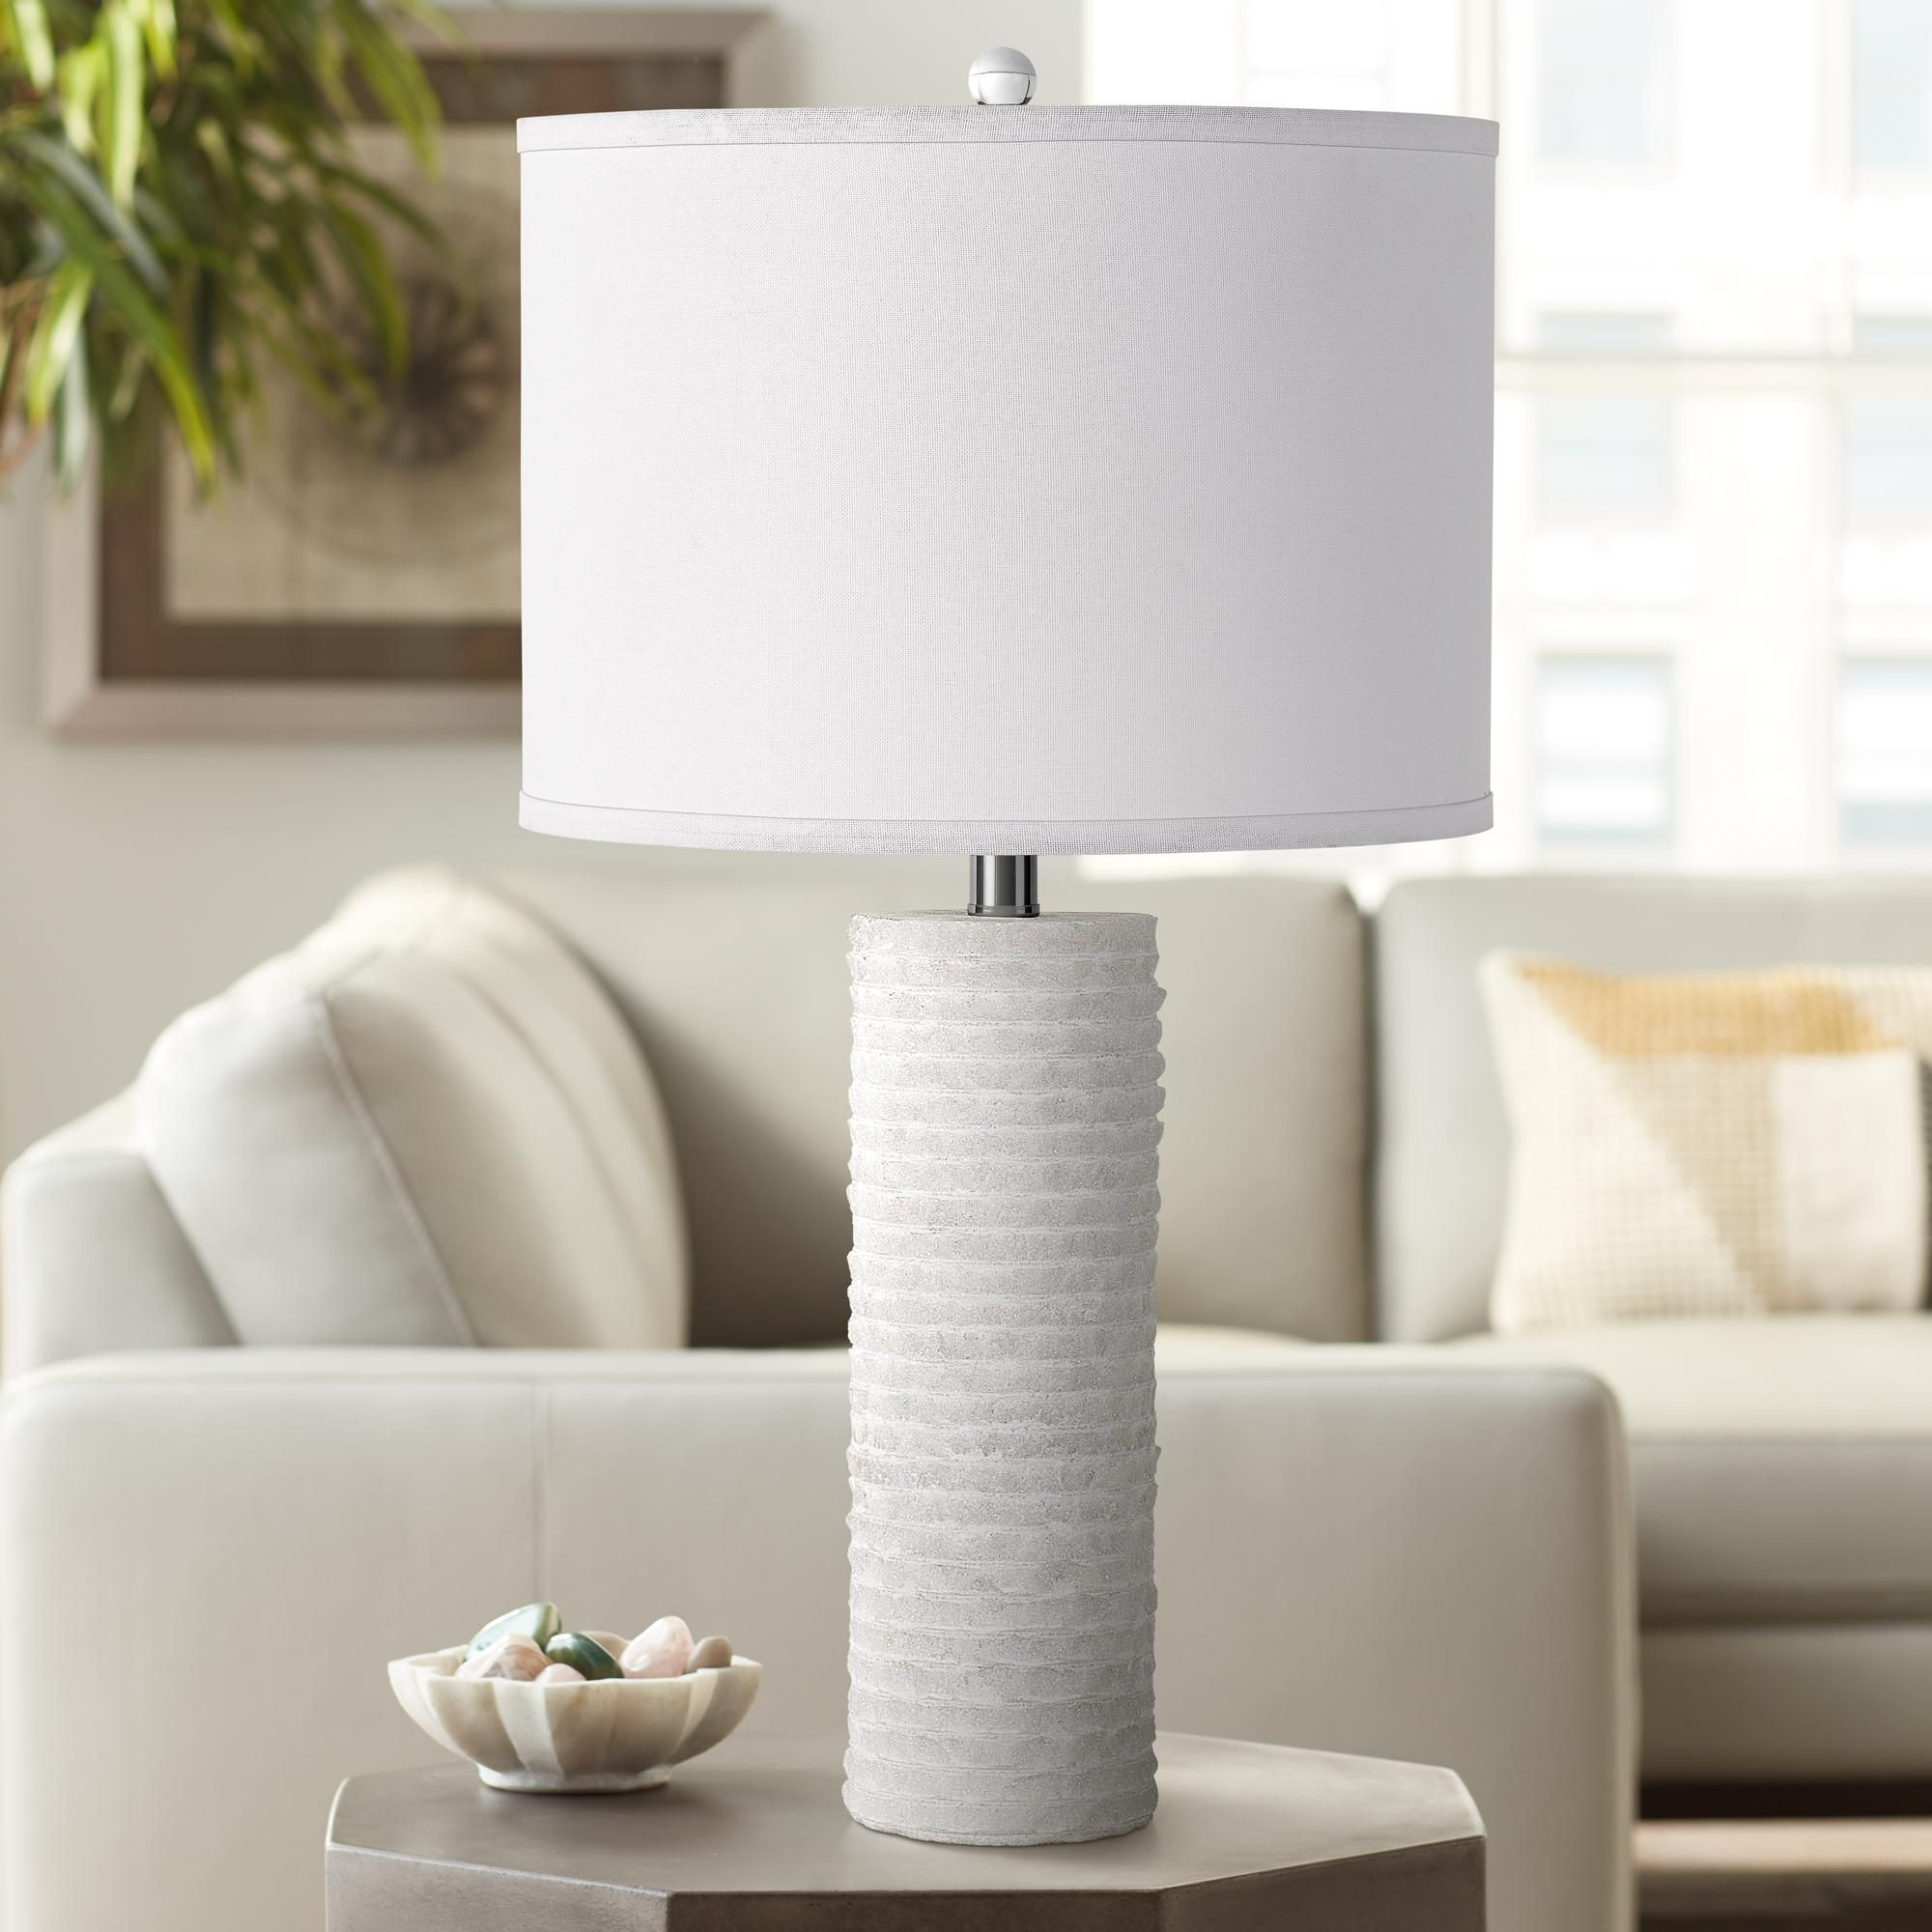 Table Lamps Granite Stone Snowy White Stacked Tower Table Lamp White Table Lamp Table Lamp Lamp